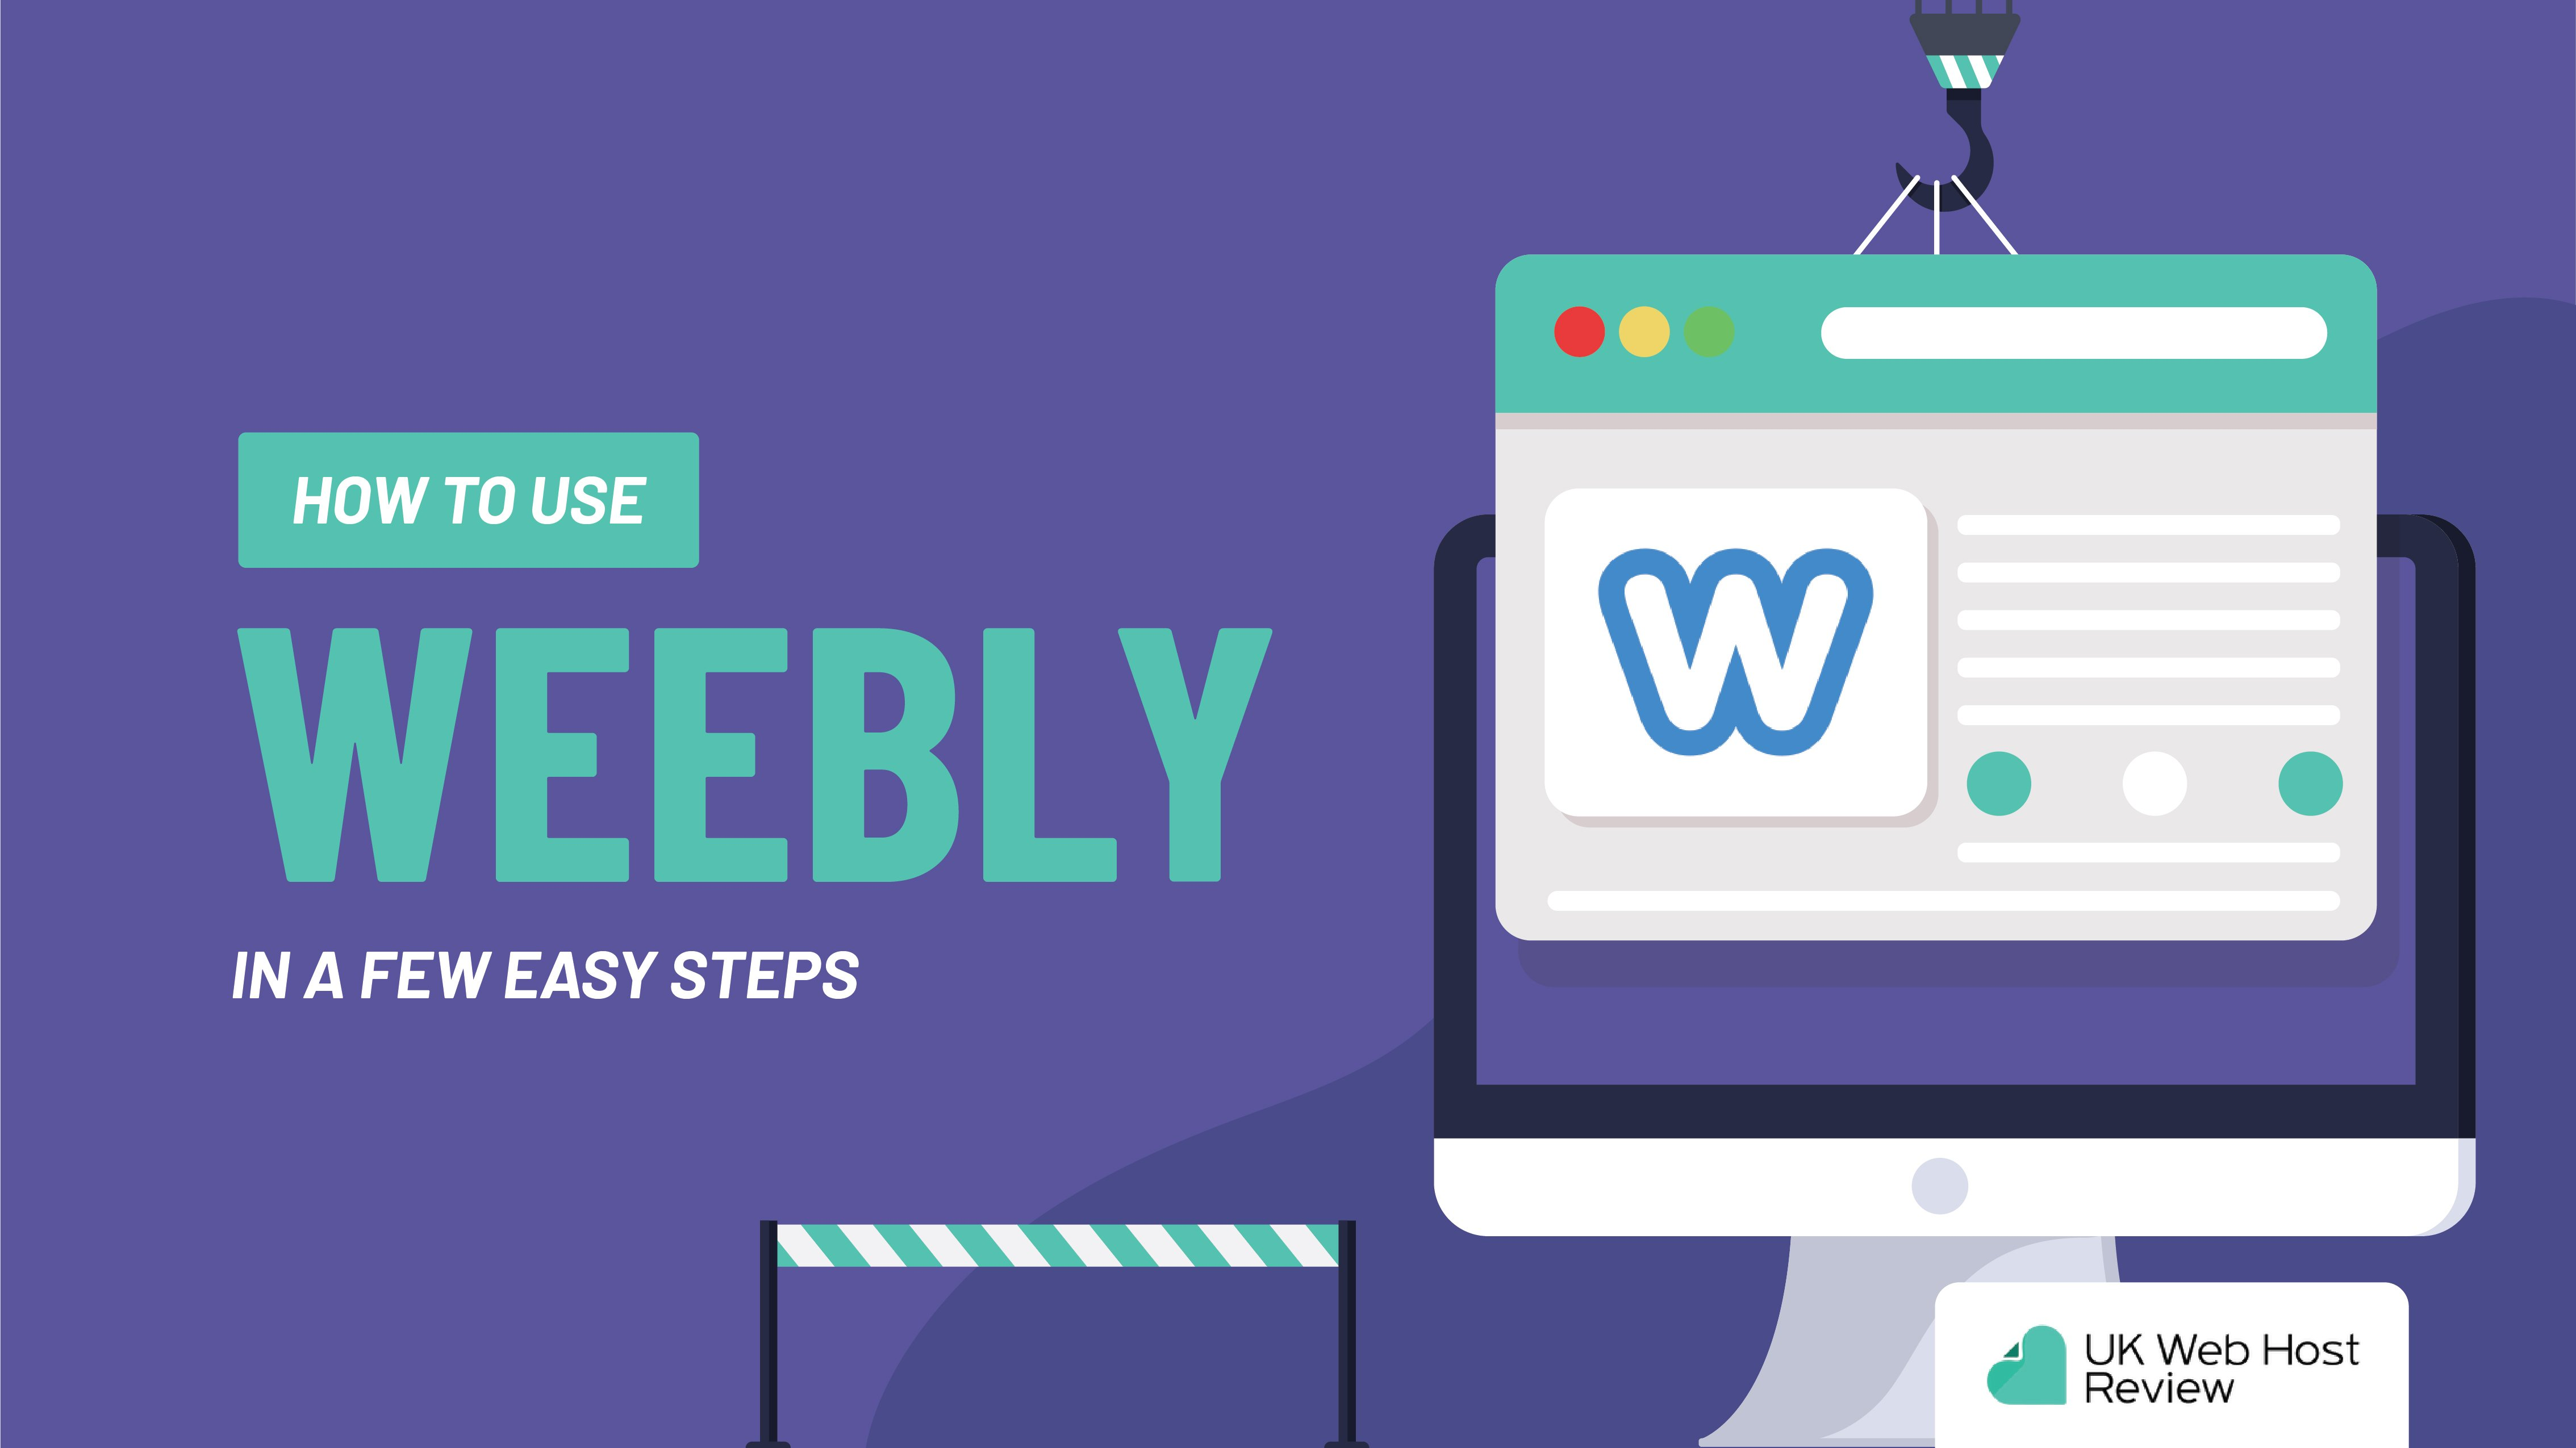 How to Use Weebly In a Few Easy Steps